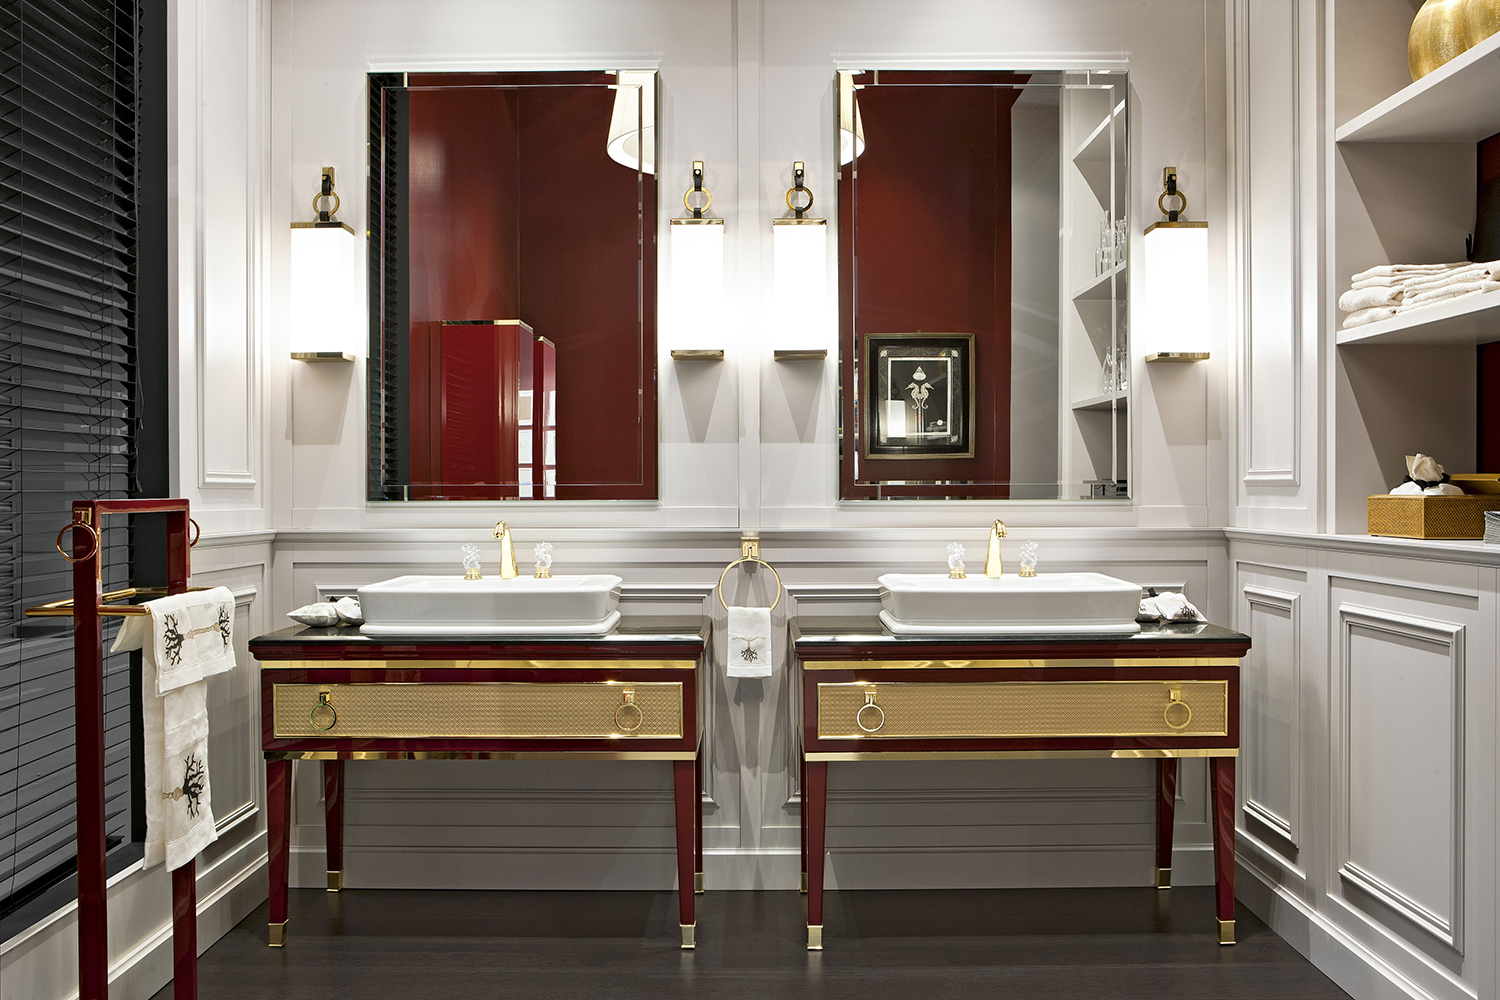 Home interiors bathroom - Modern Classic Art Deco Bathroom Vanities Visit Our Nyc Bathroom Vanities Showroom For More Details